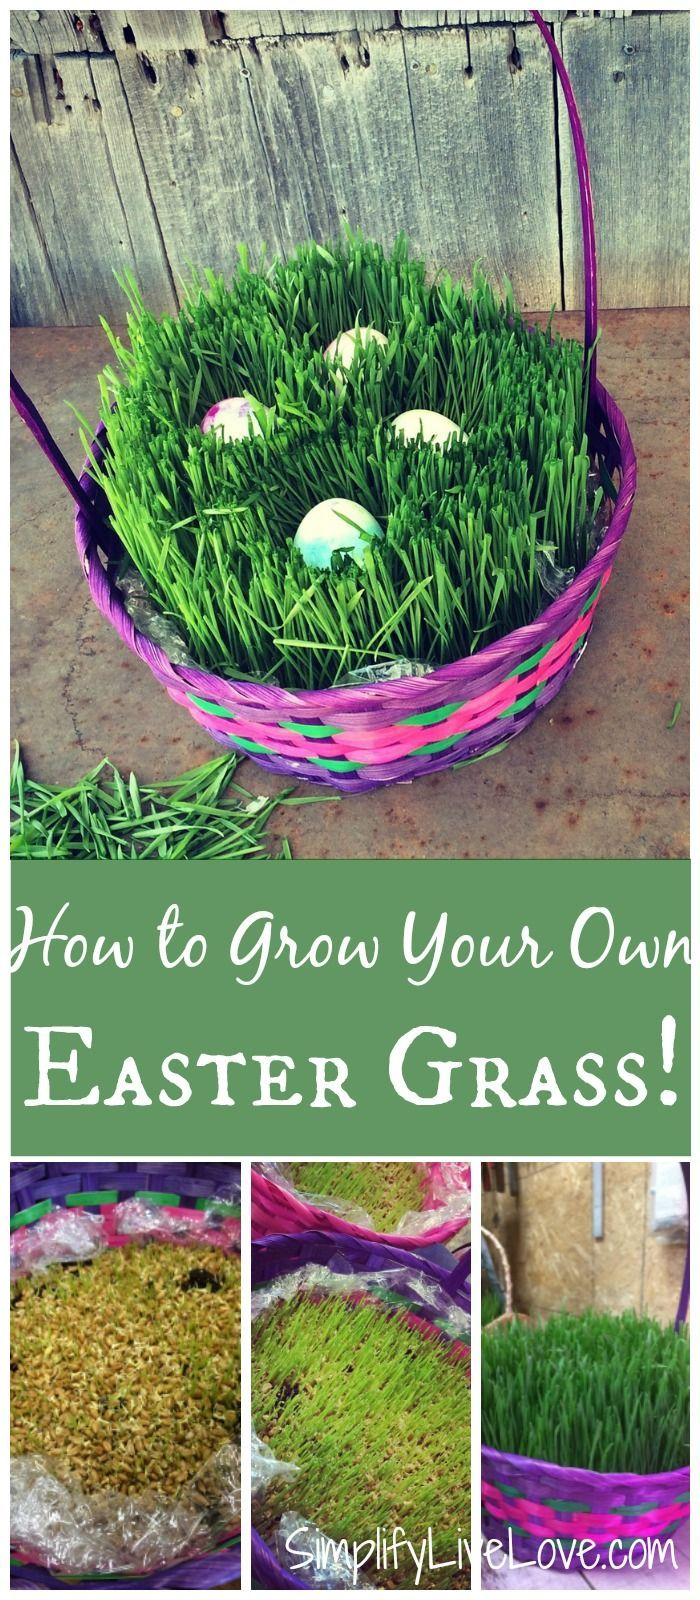 Heres how to grow your own easter basket grass in less than a week heres how to grow your own easter basket grass in less than a week its not hard and the supplies arent that expensive do this fun easter proje negle Image collections